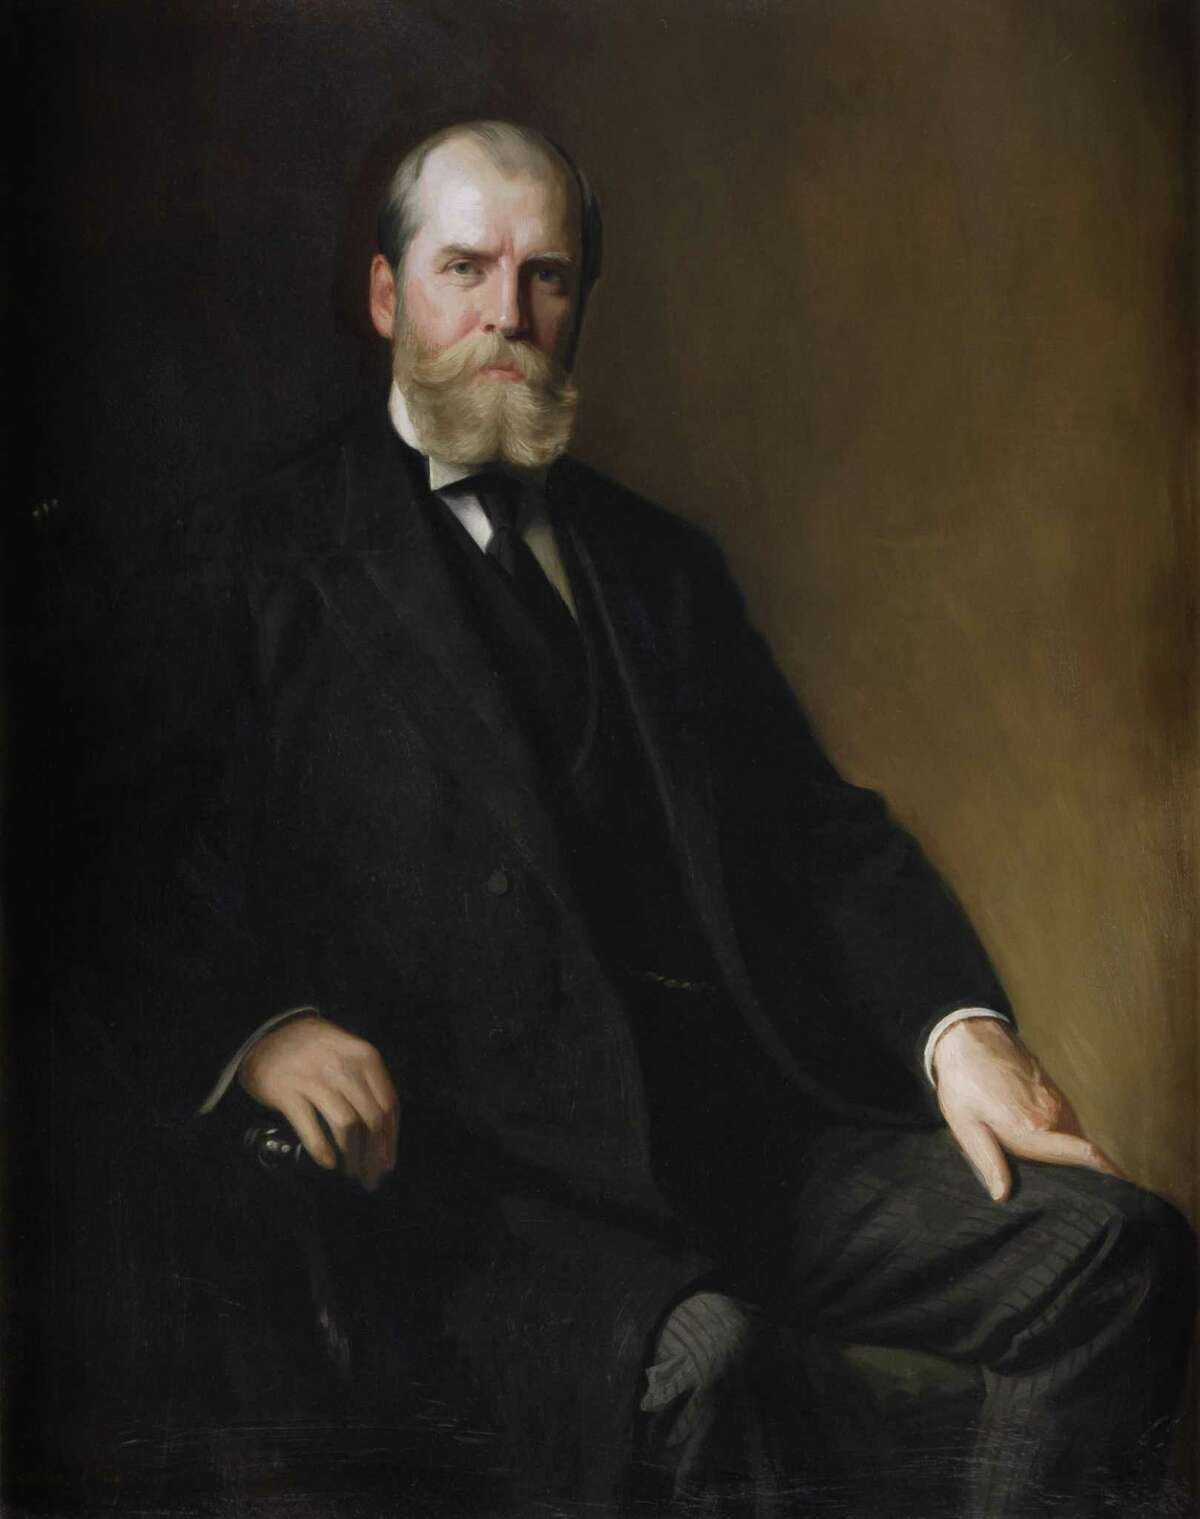 Charles Evans Hughes, 36th Governor of New York and Republican nominee for the 1916 U.S. presidential election. (State Archive)